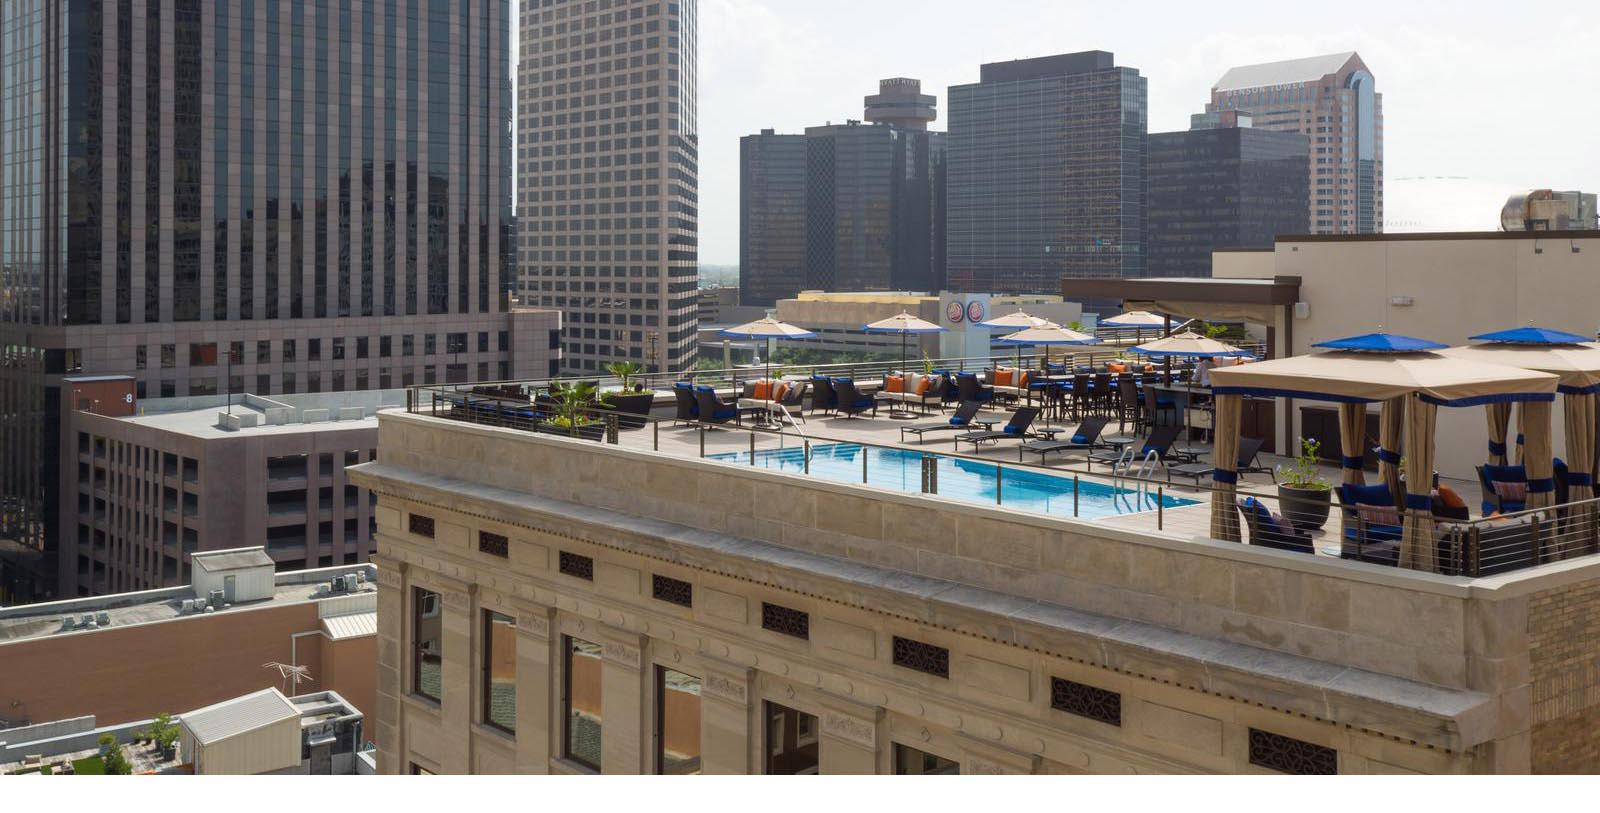 Image of Exterior & Rooftop Pool, NOPSI New Orleans, Louisiana, 1927, Member of Historic Hotels of America, Special Offers, Discounted Rates, Families, Romantic Escape, Honeymoons, Anniversaries, Reunions